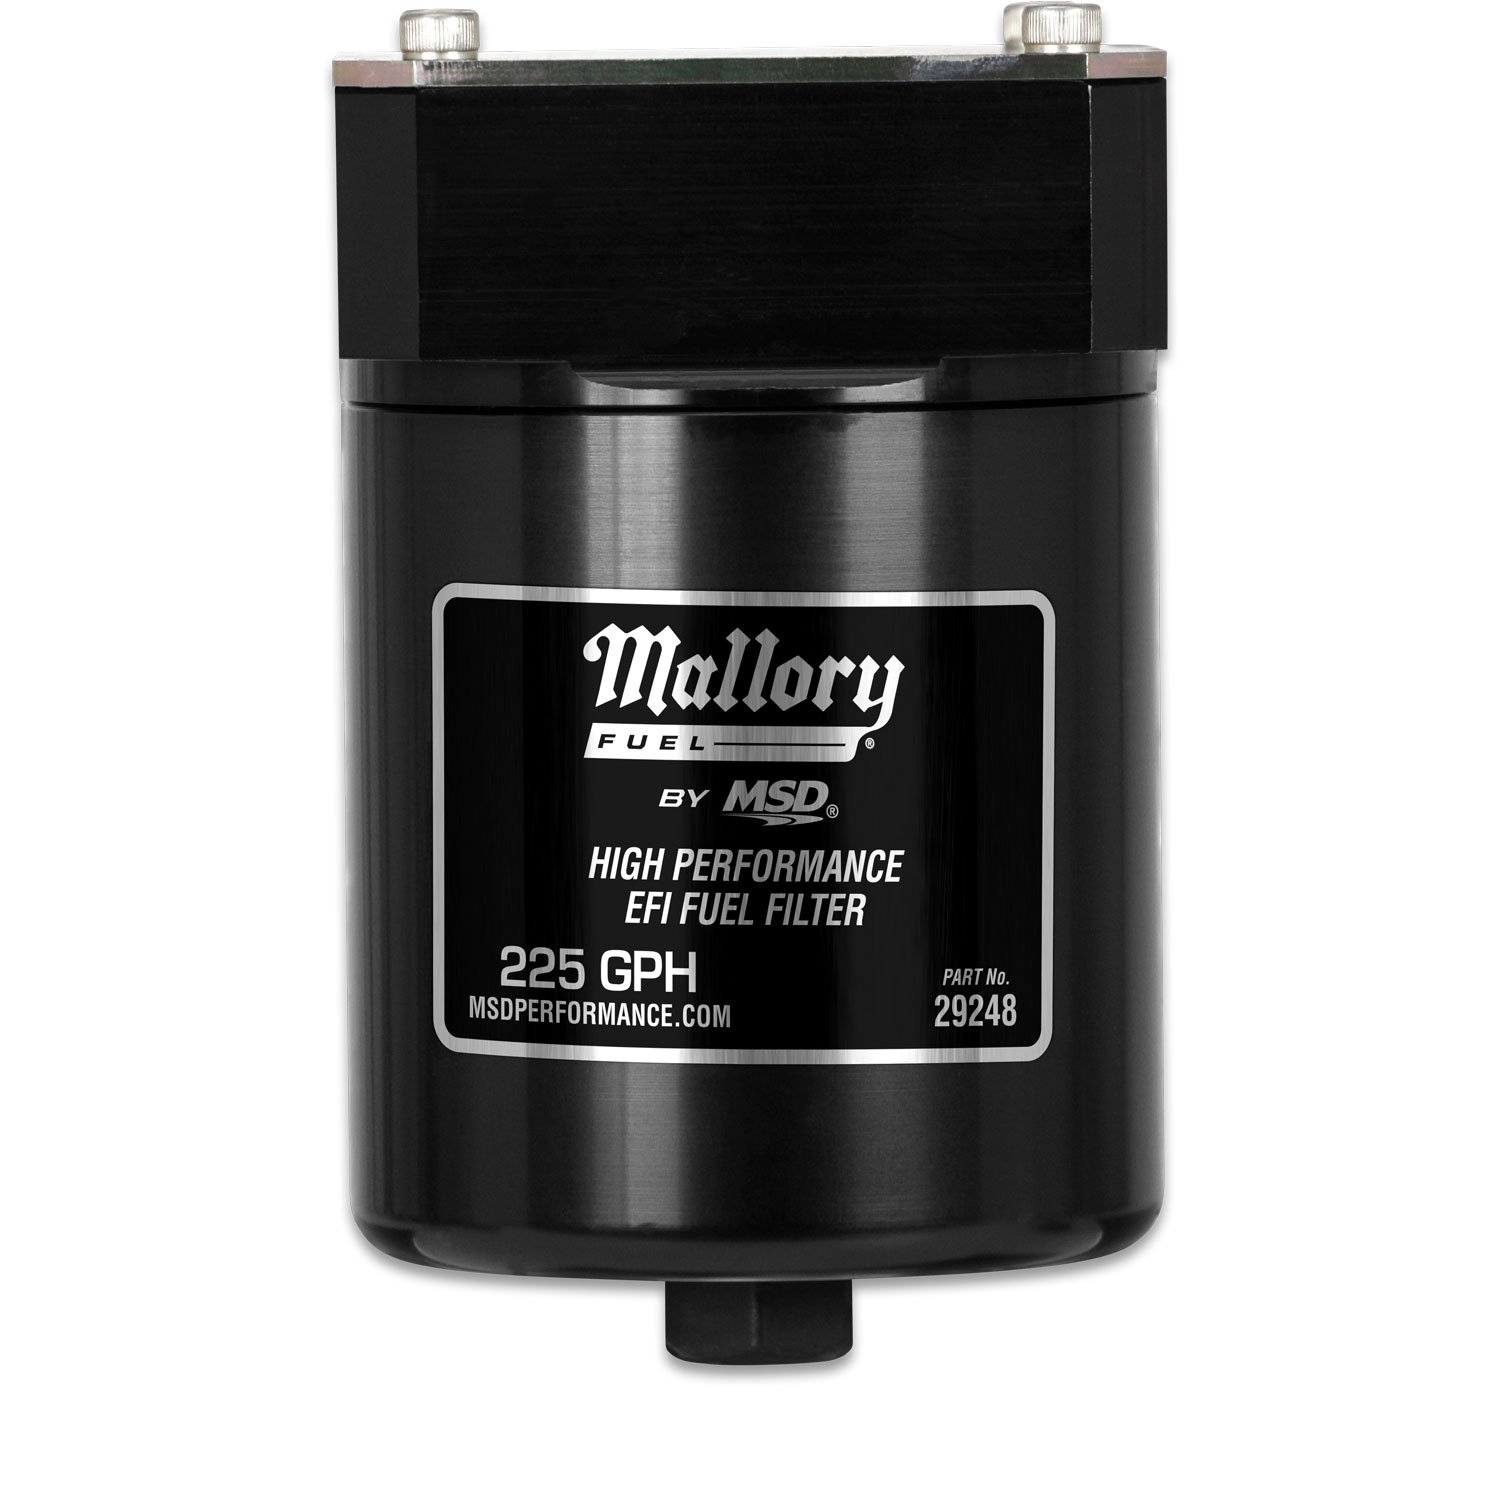 29248 - Mallory High Pressure EFI Fuel Filter Image